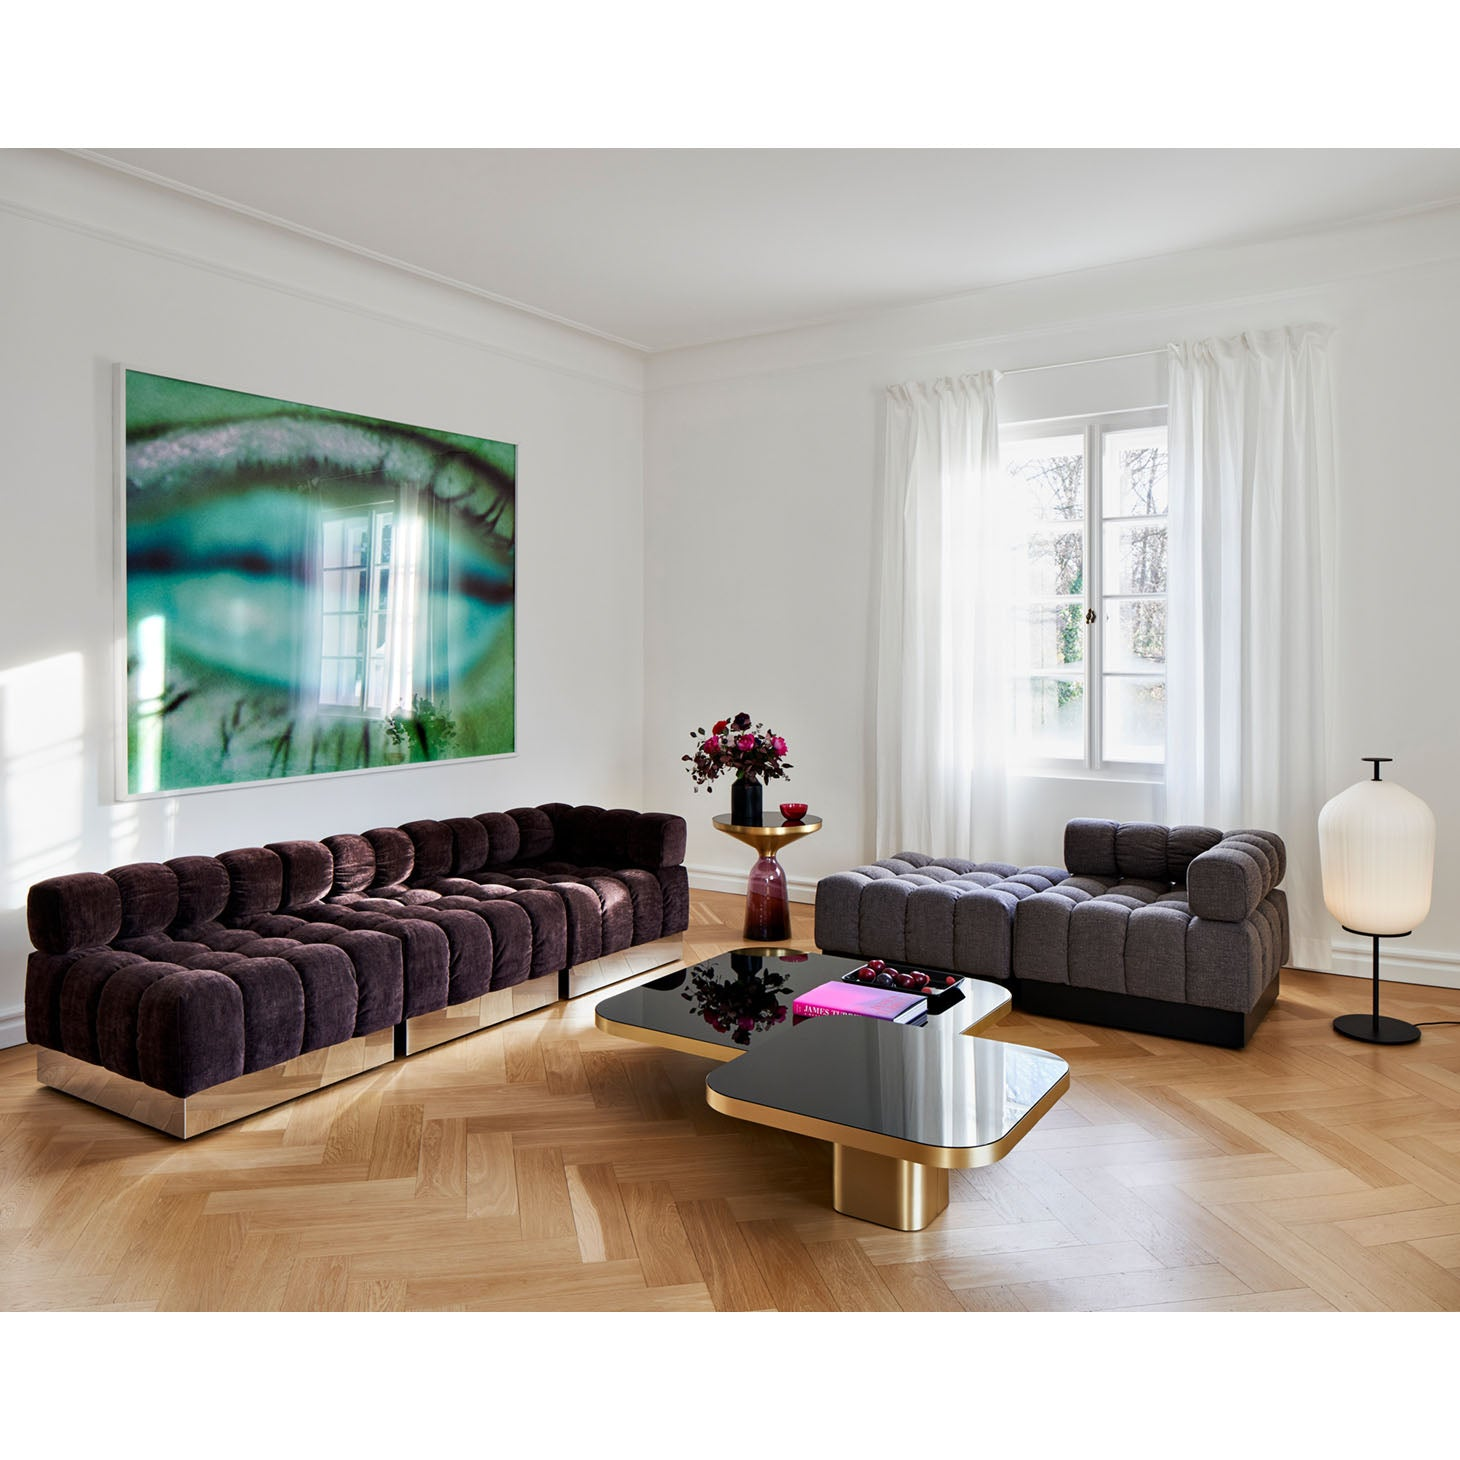 Harvey Probber's Deep Tuft® sofa by M2L